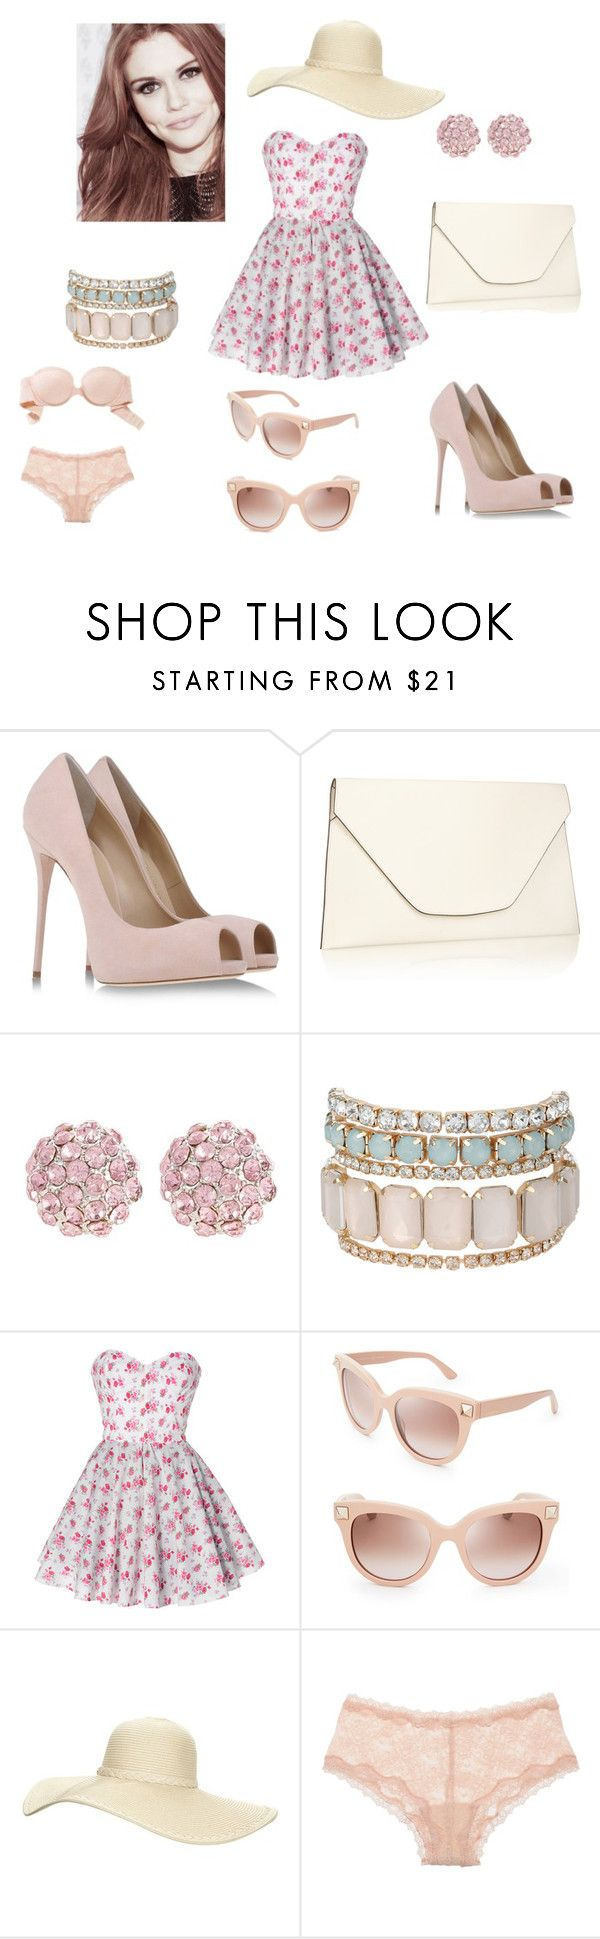 """mikafes"" by jessicabradley ❤ liked on Polyvore featuring Giuseppe Zanotti, Valextra, Snö Of Sweden, Jane Norman, Valentino, Reger by Janet Reger, Kinky Knickers, Aerie, women's clothing and women"